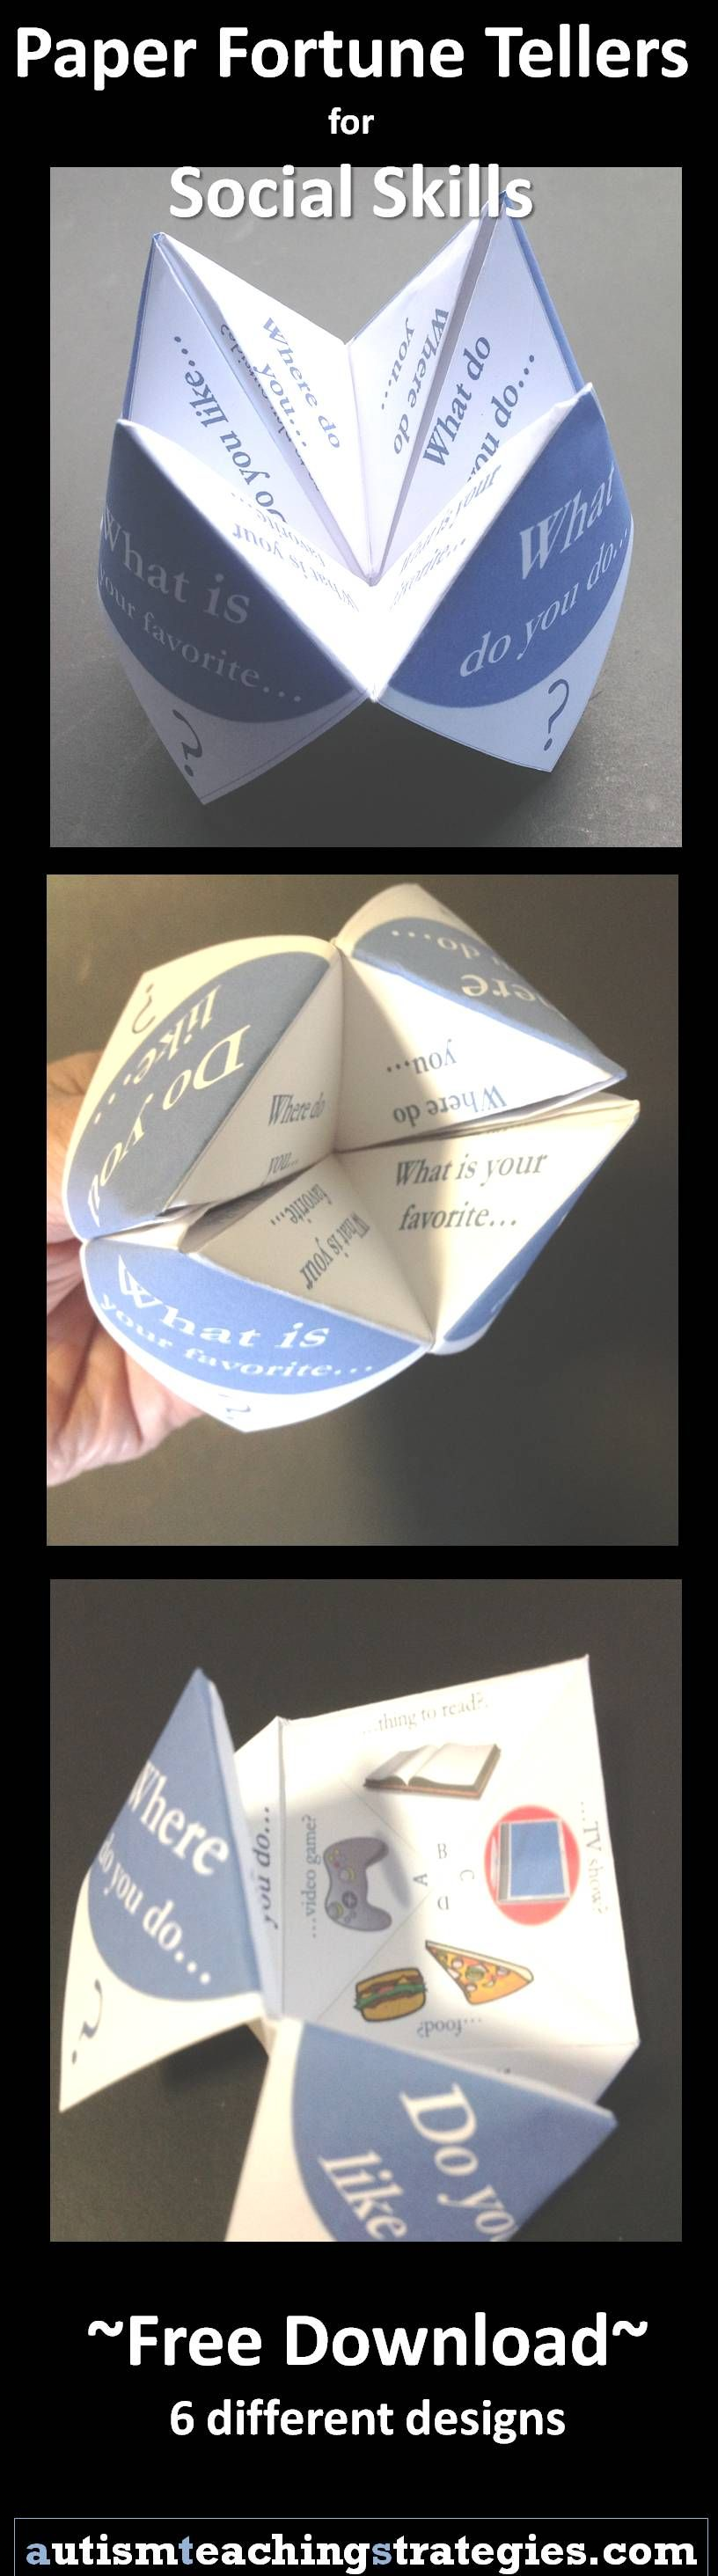 """Fold these free """"fortune tellers"""" into social skills games"""